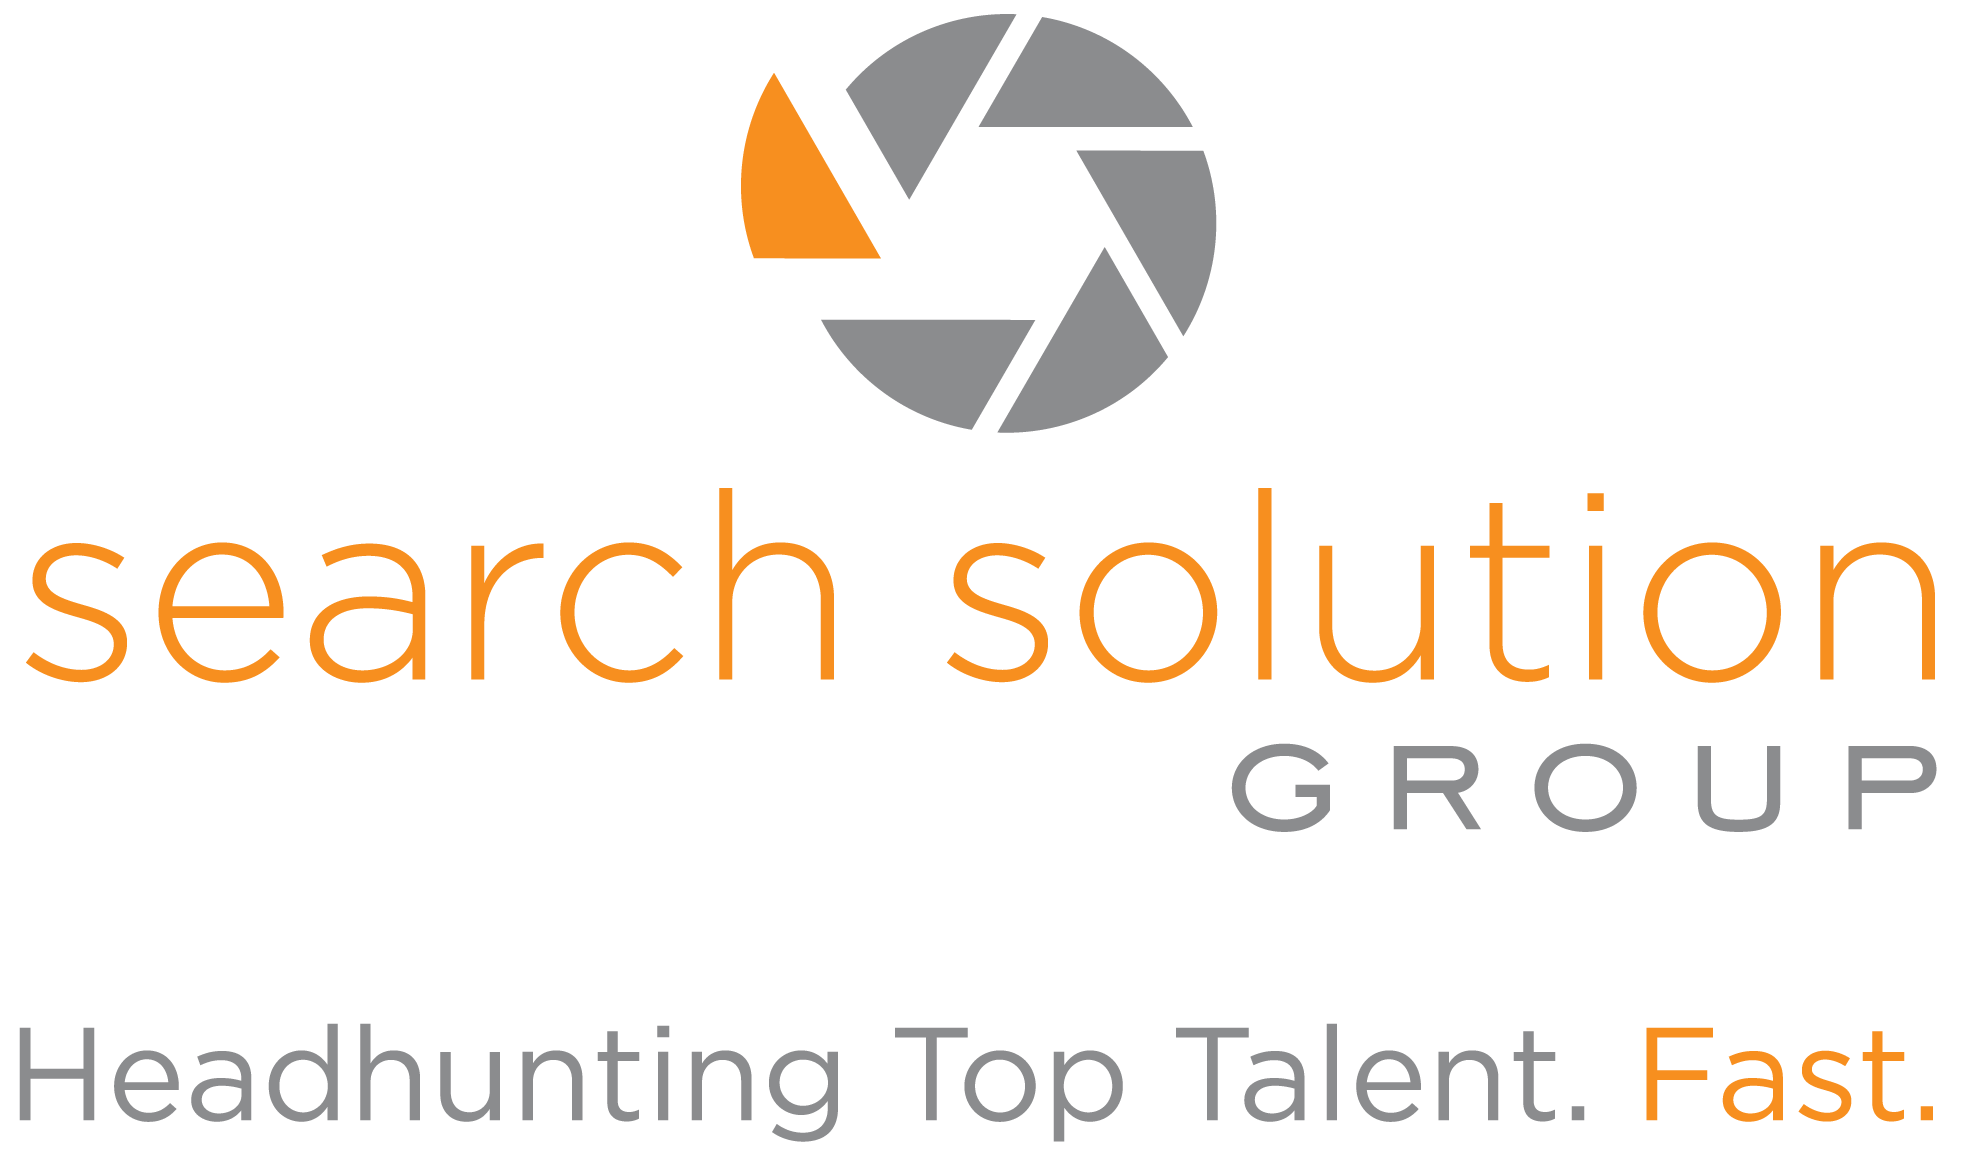 Search Solution Group image 1